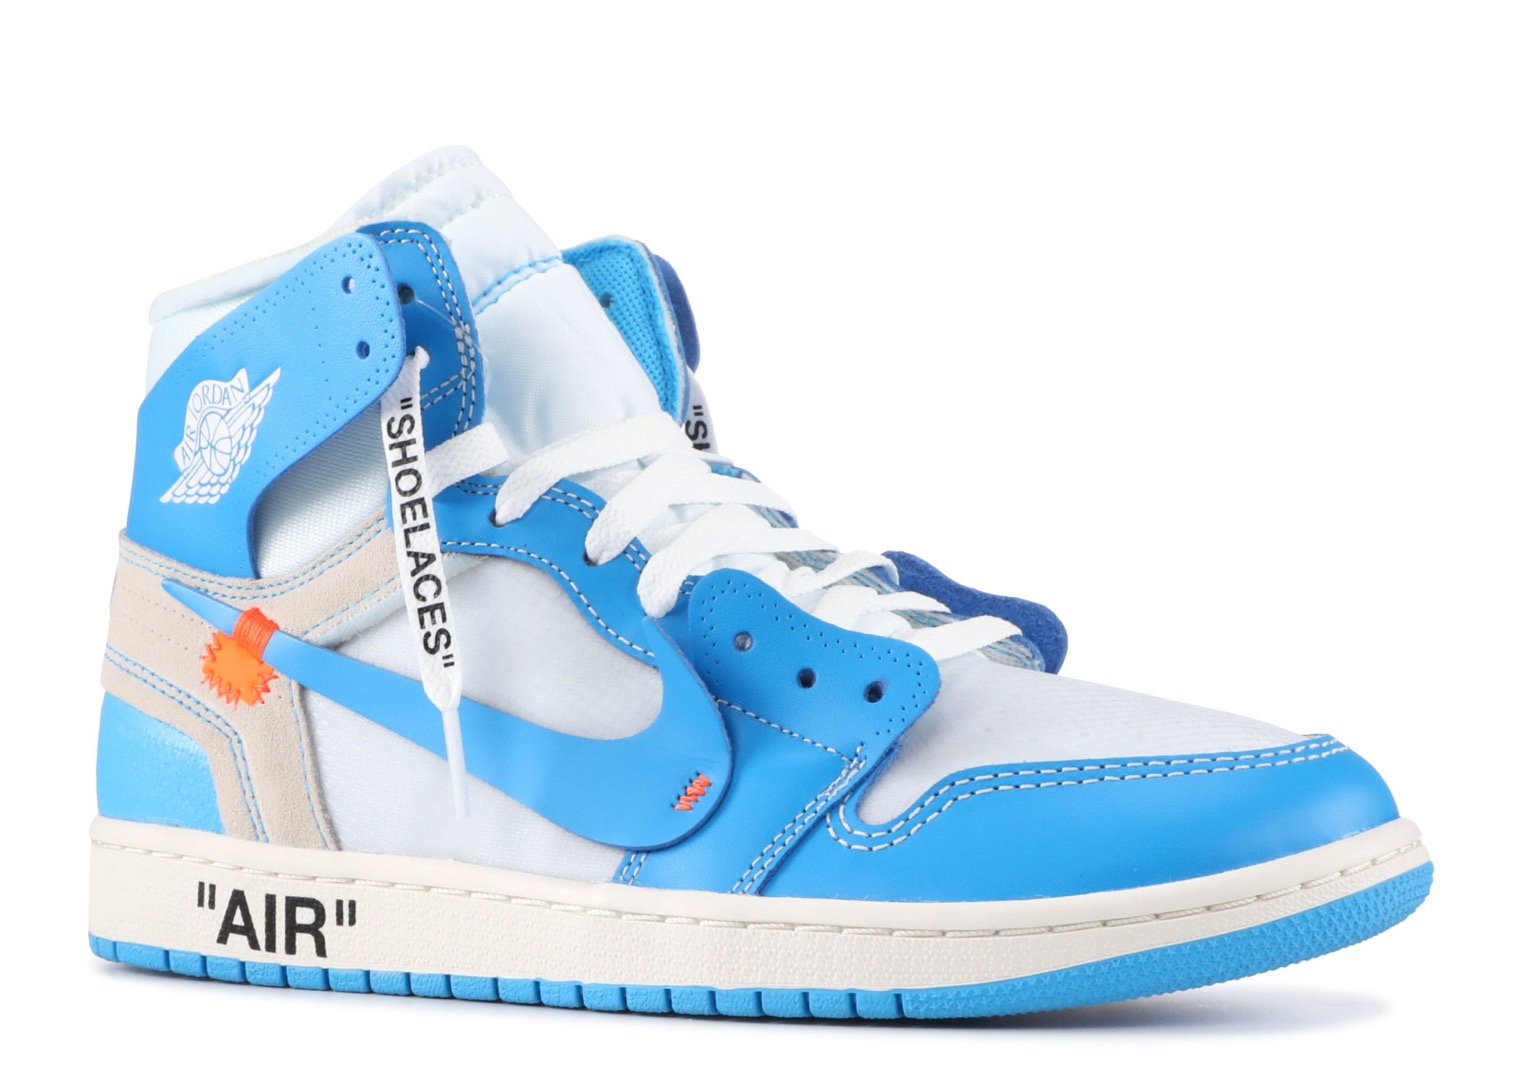 Air Jordan OFF WHITE NRG OFF - 1